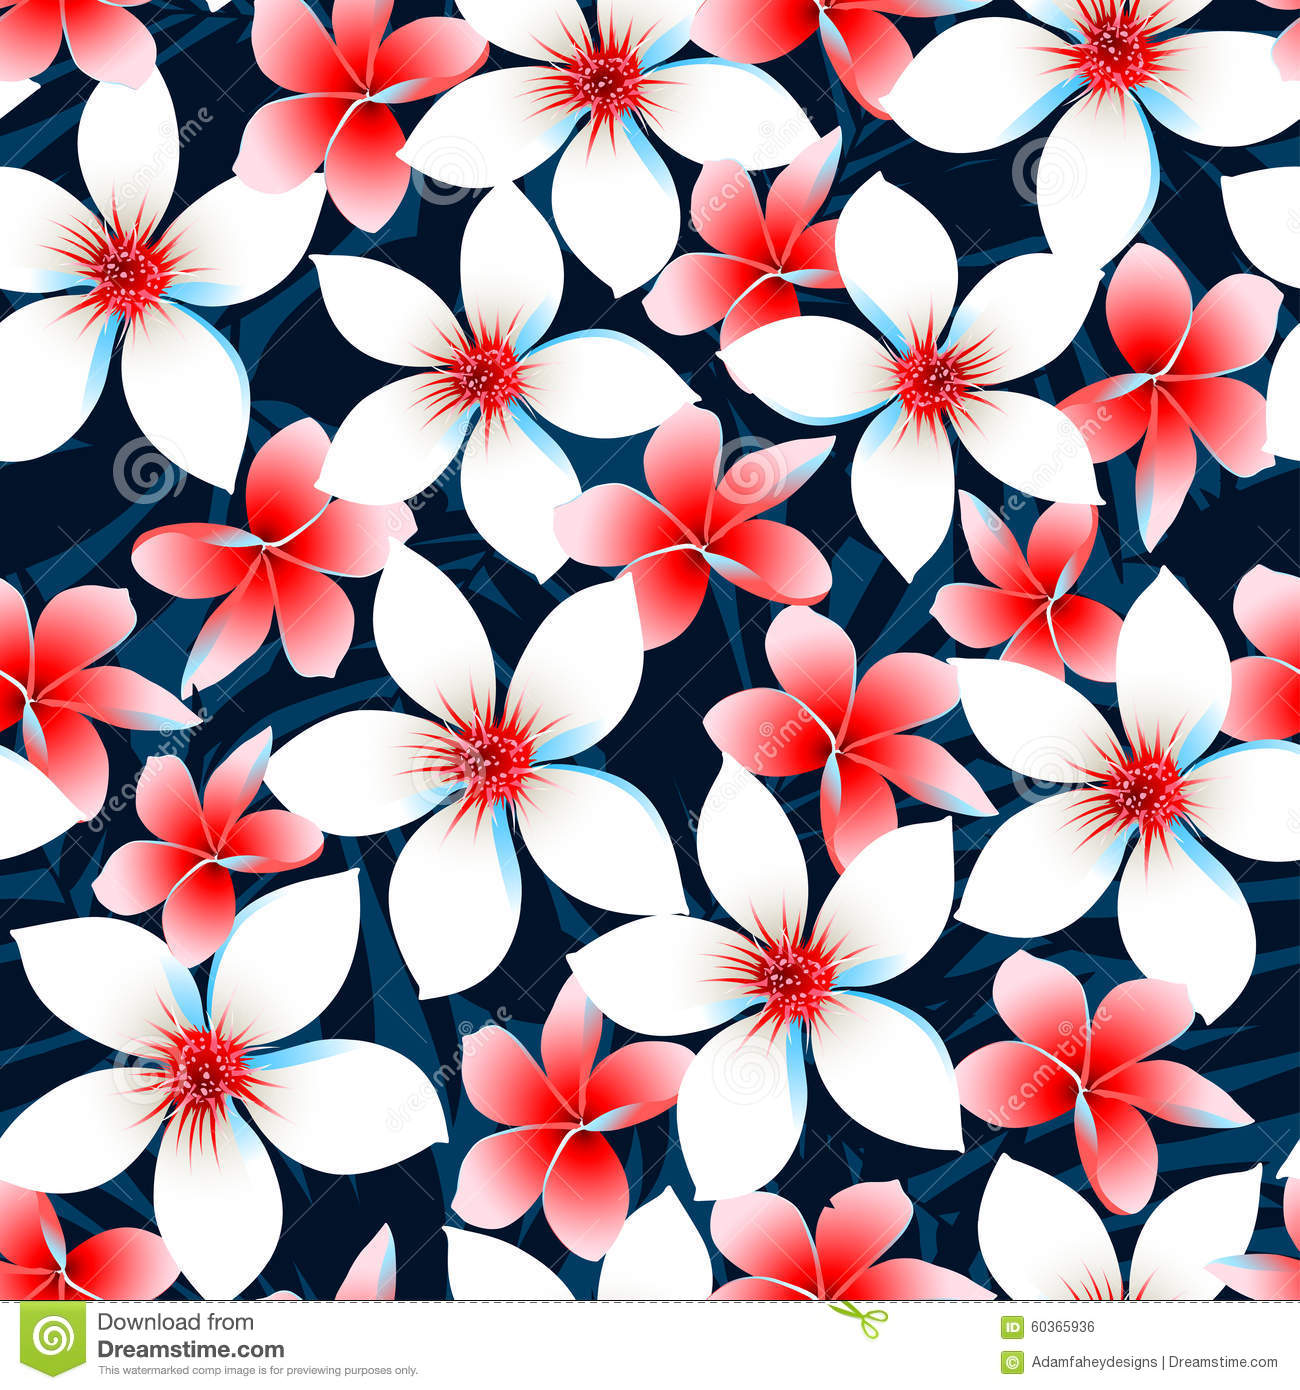 Red white and blue tropical flowers seamless pattern stock vector red white and blue tropical flowers seamless pattern izmirmasajfo Gallery